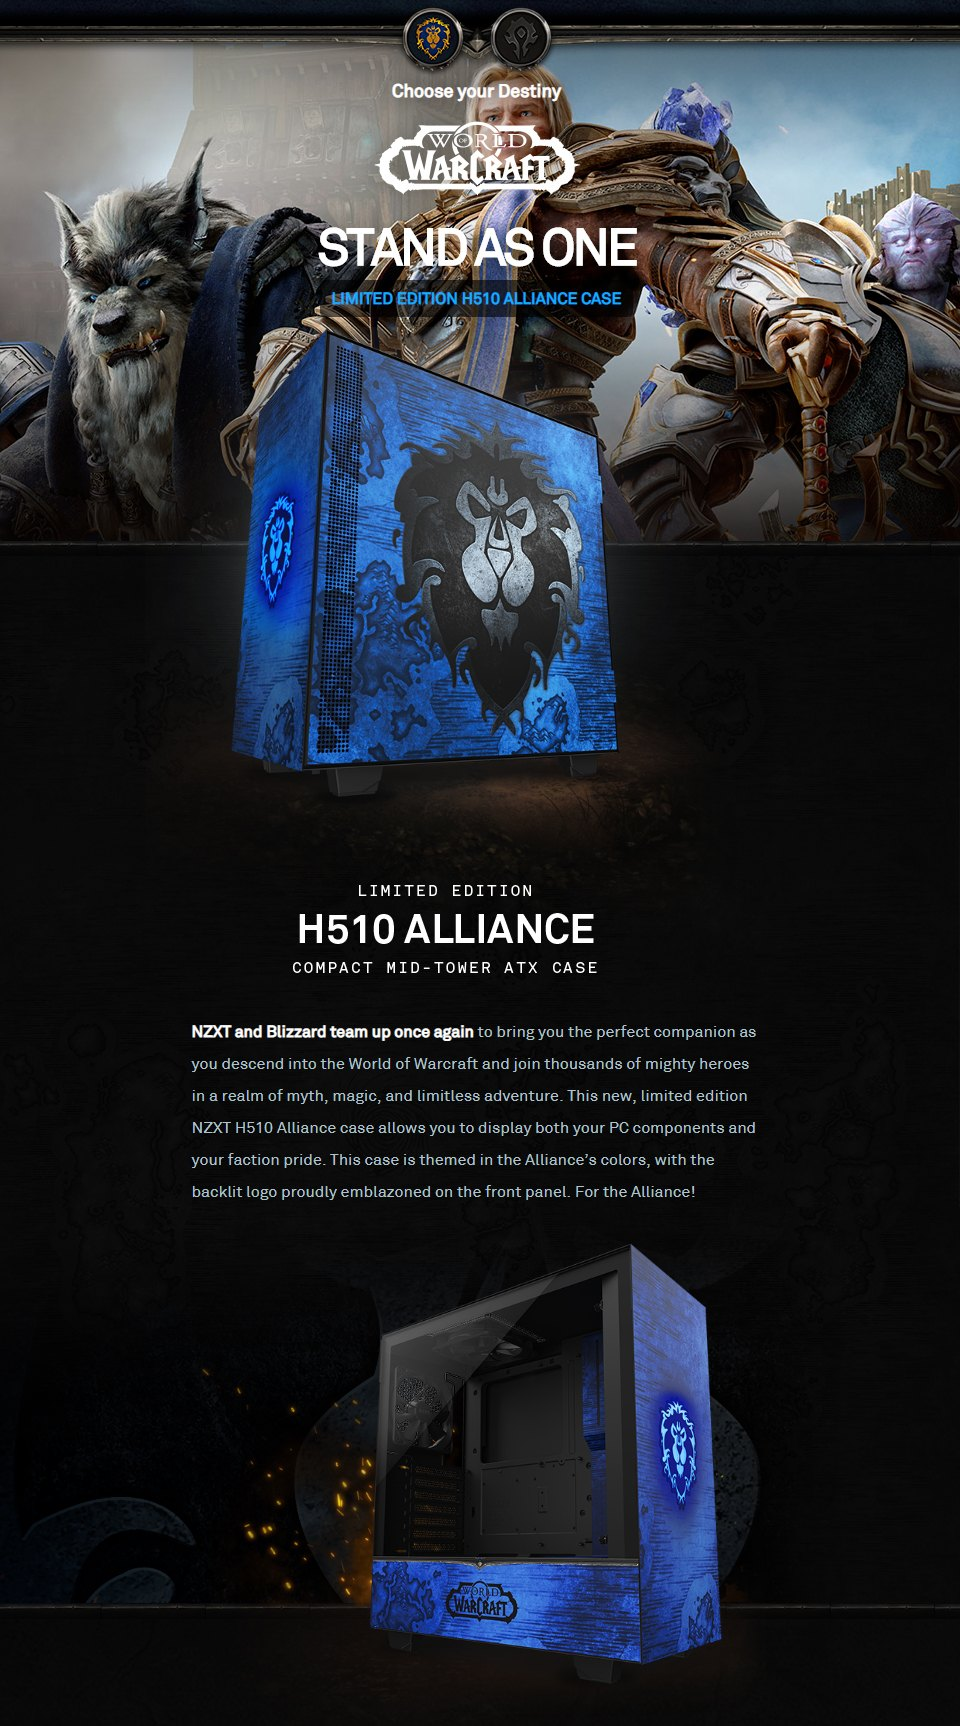 NZXT H510 Mid Tower Case World of Warcraft Alliance Ltd Edition features